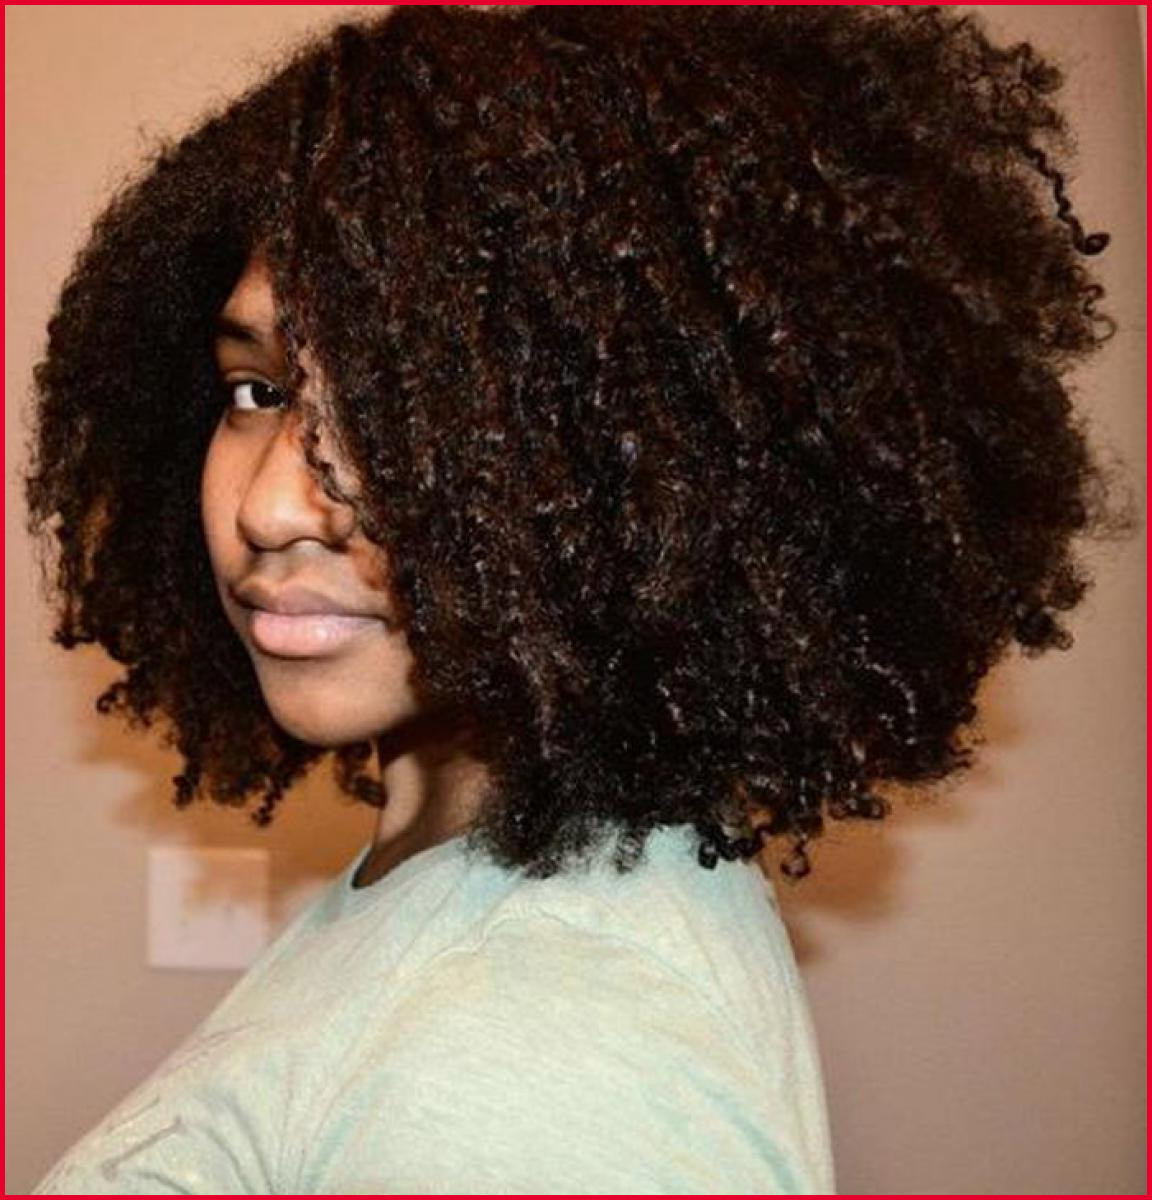 Black Natural Curly Hairstyles For Medium Length Hair 66688 Medium For Fashionable Medium Haircuts For Naturally Curly Hair (View 5 of 20)